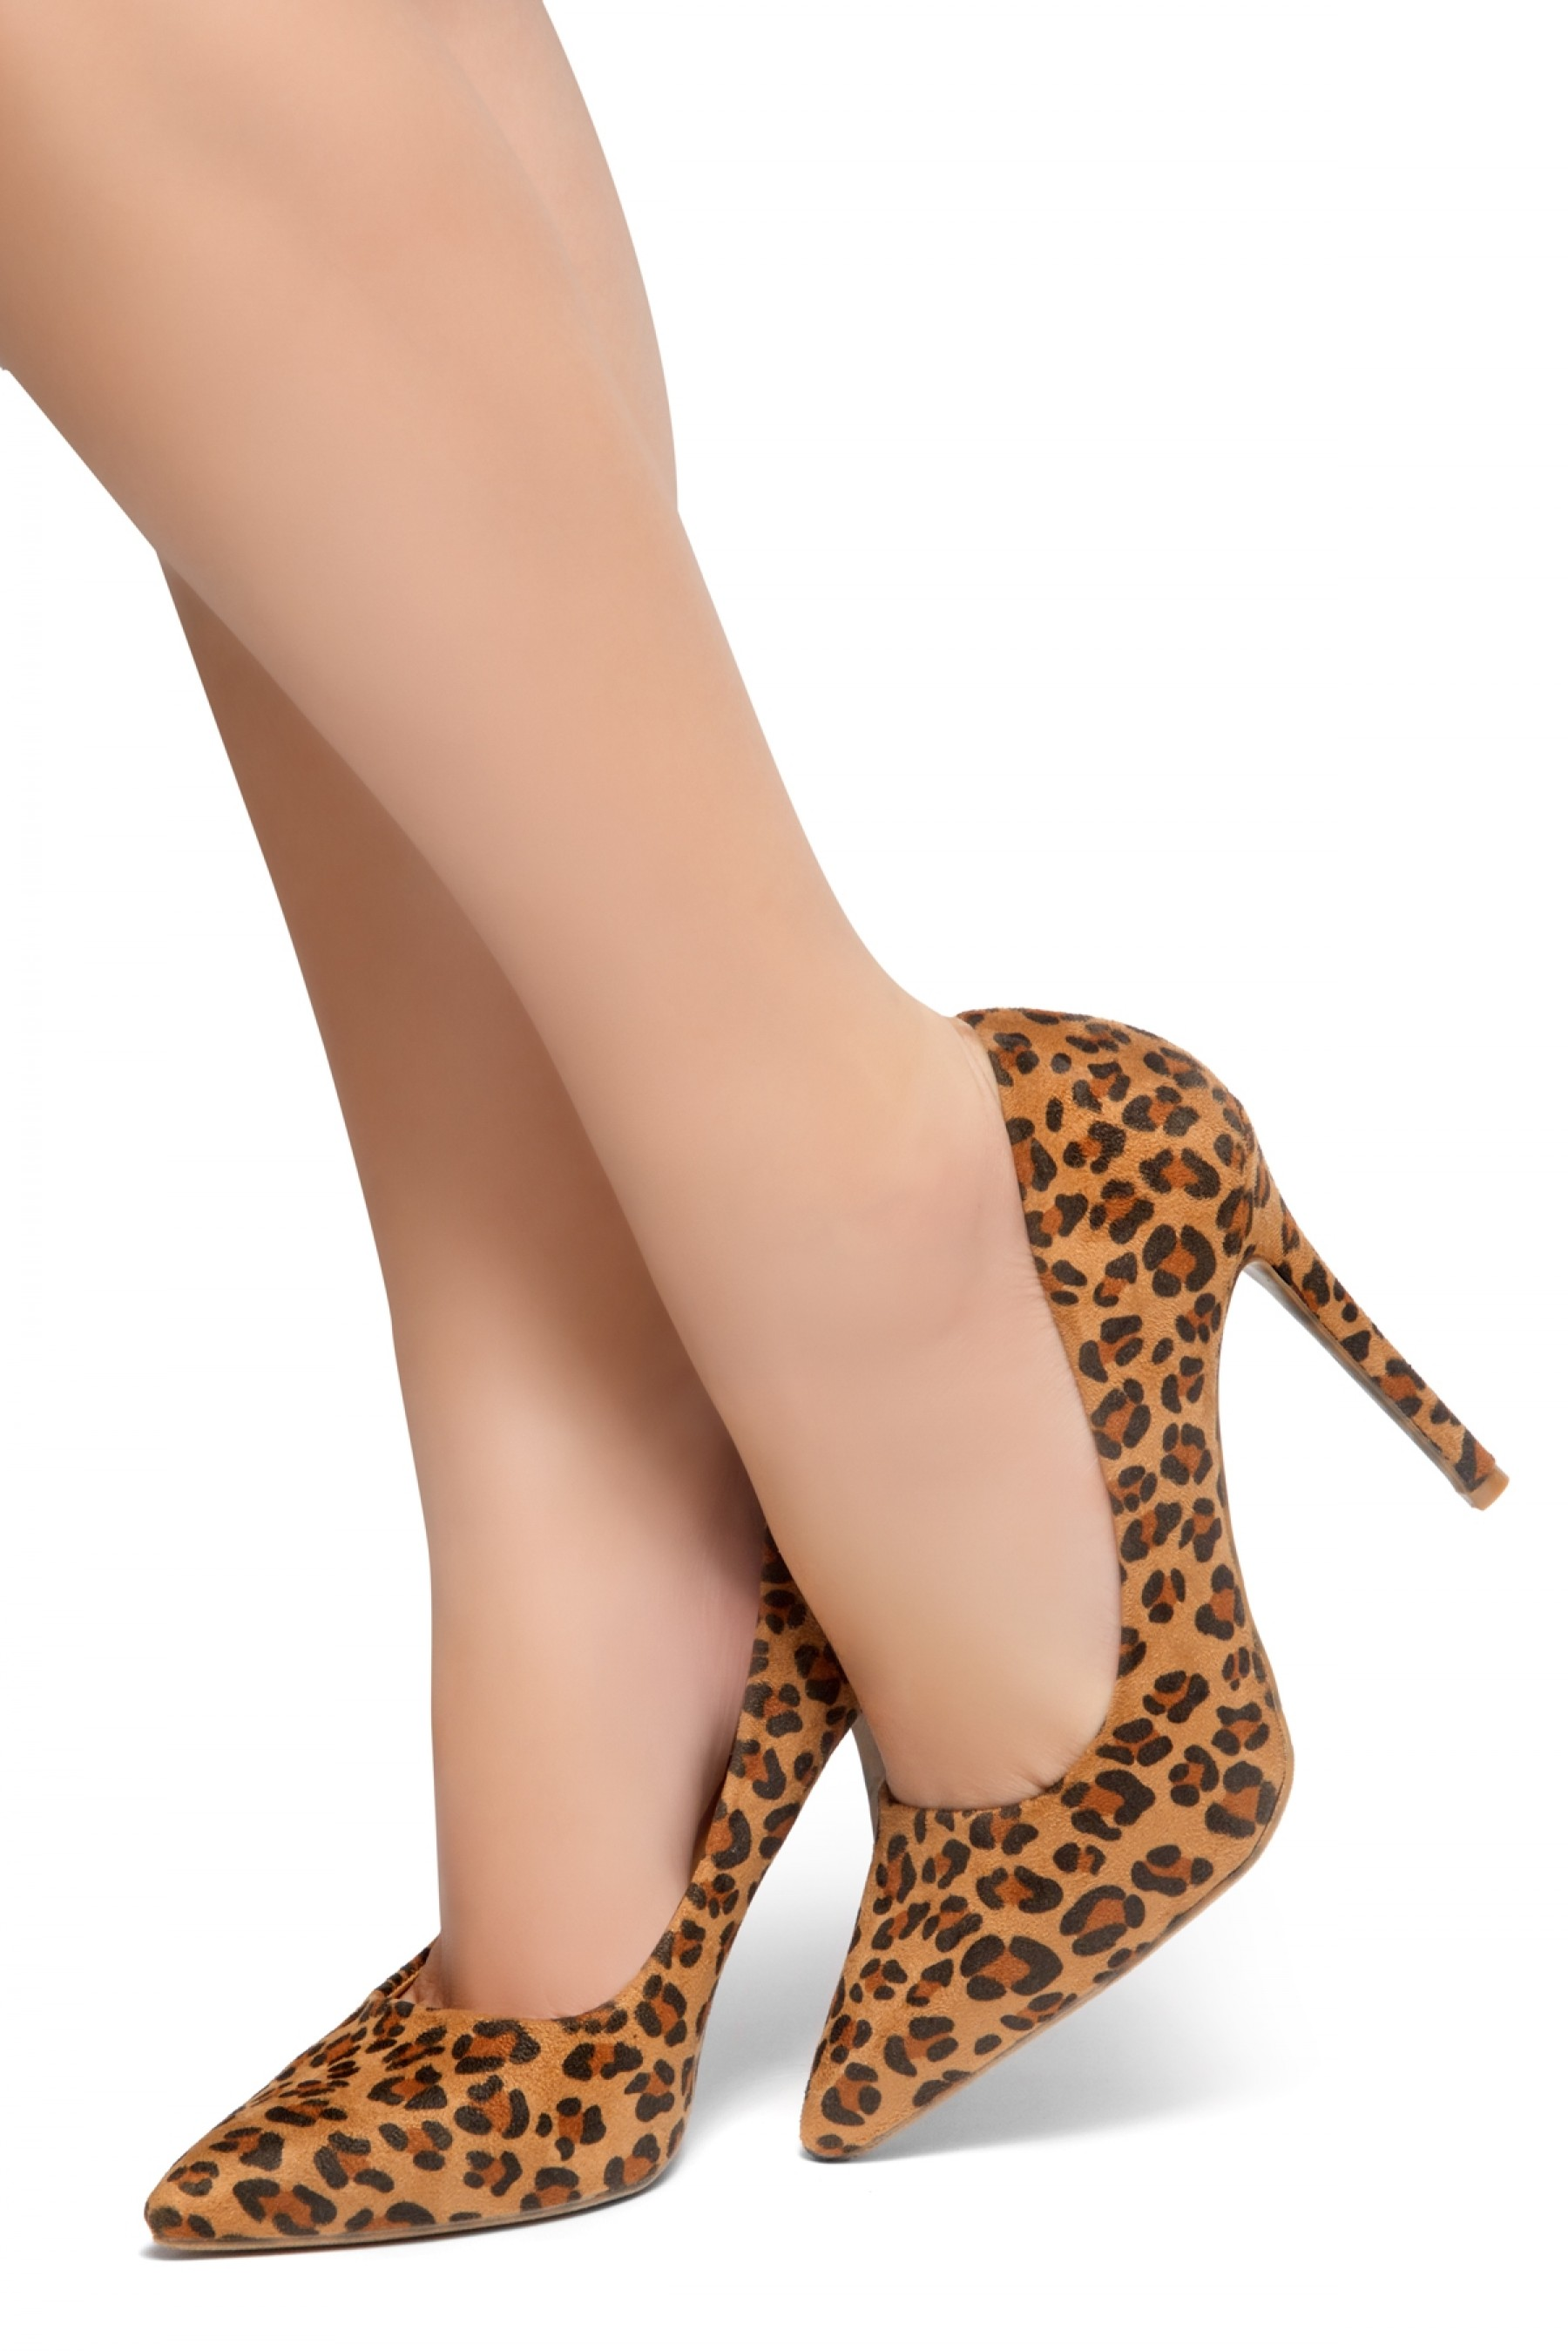 HerStyle Marneena-Women's Manmade 4-inch Sueded Heel with Lightly Pointed Toe (Leopard)